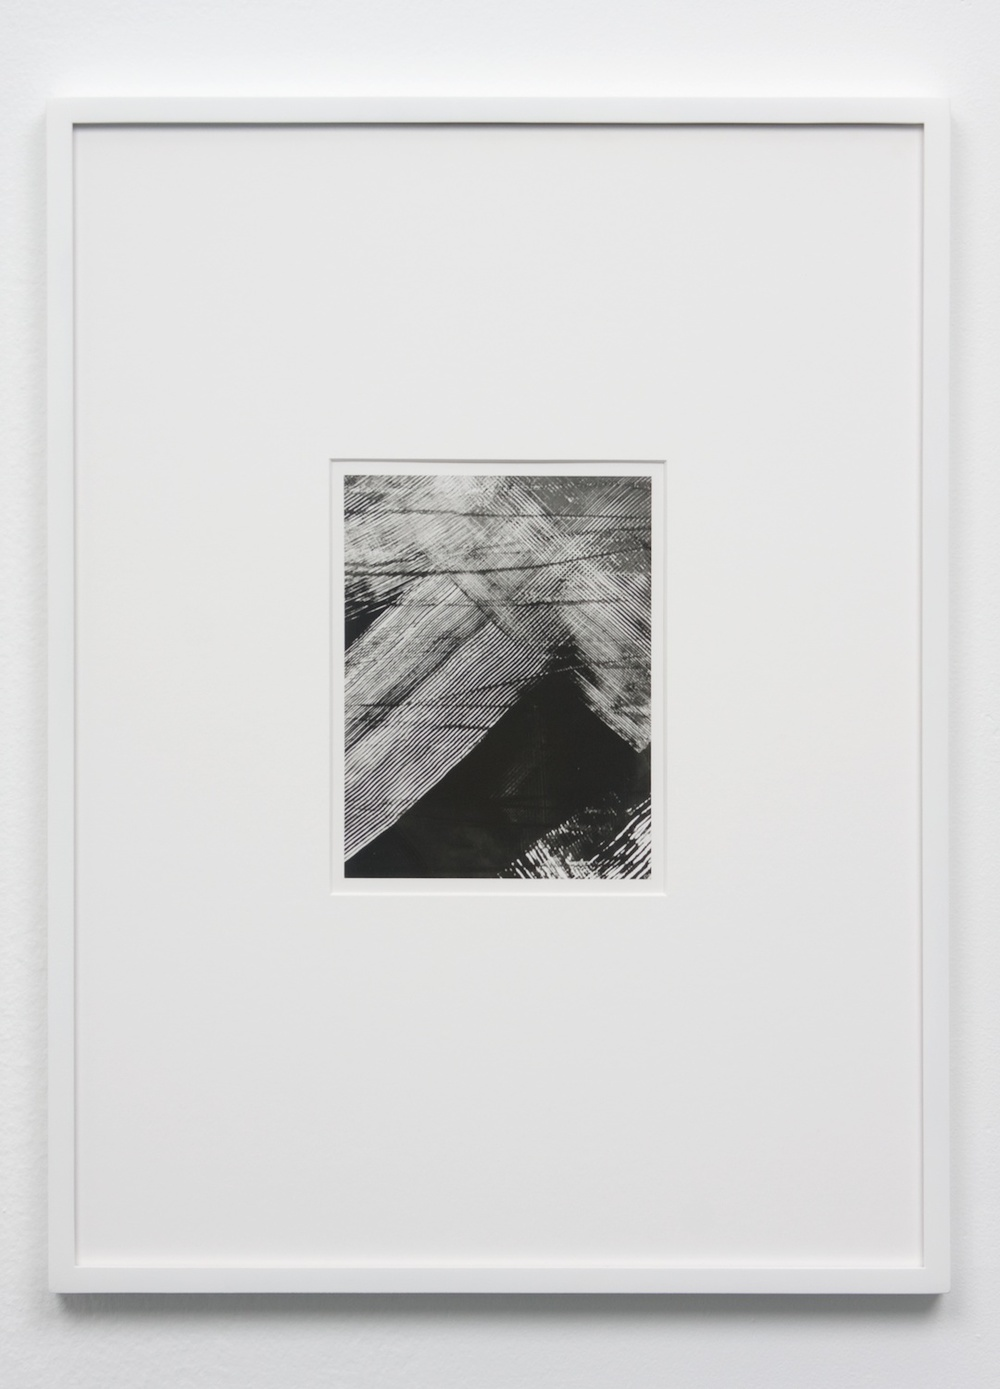 Anthony Pearson  Untitled (Solarization)  2010 Framed solarized silver gelatin photograph 17 ½h x 13 ¼w in AP235